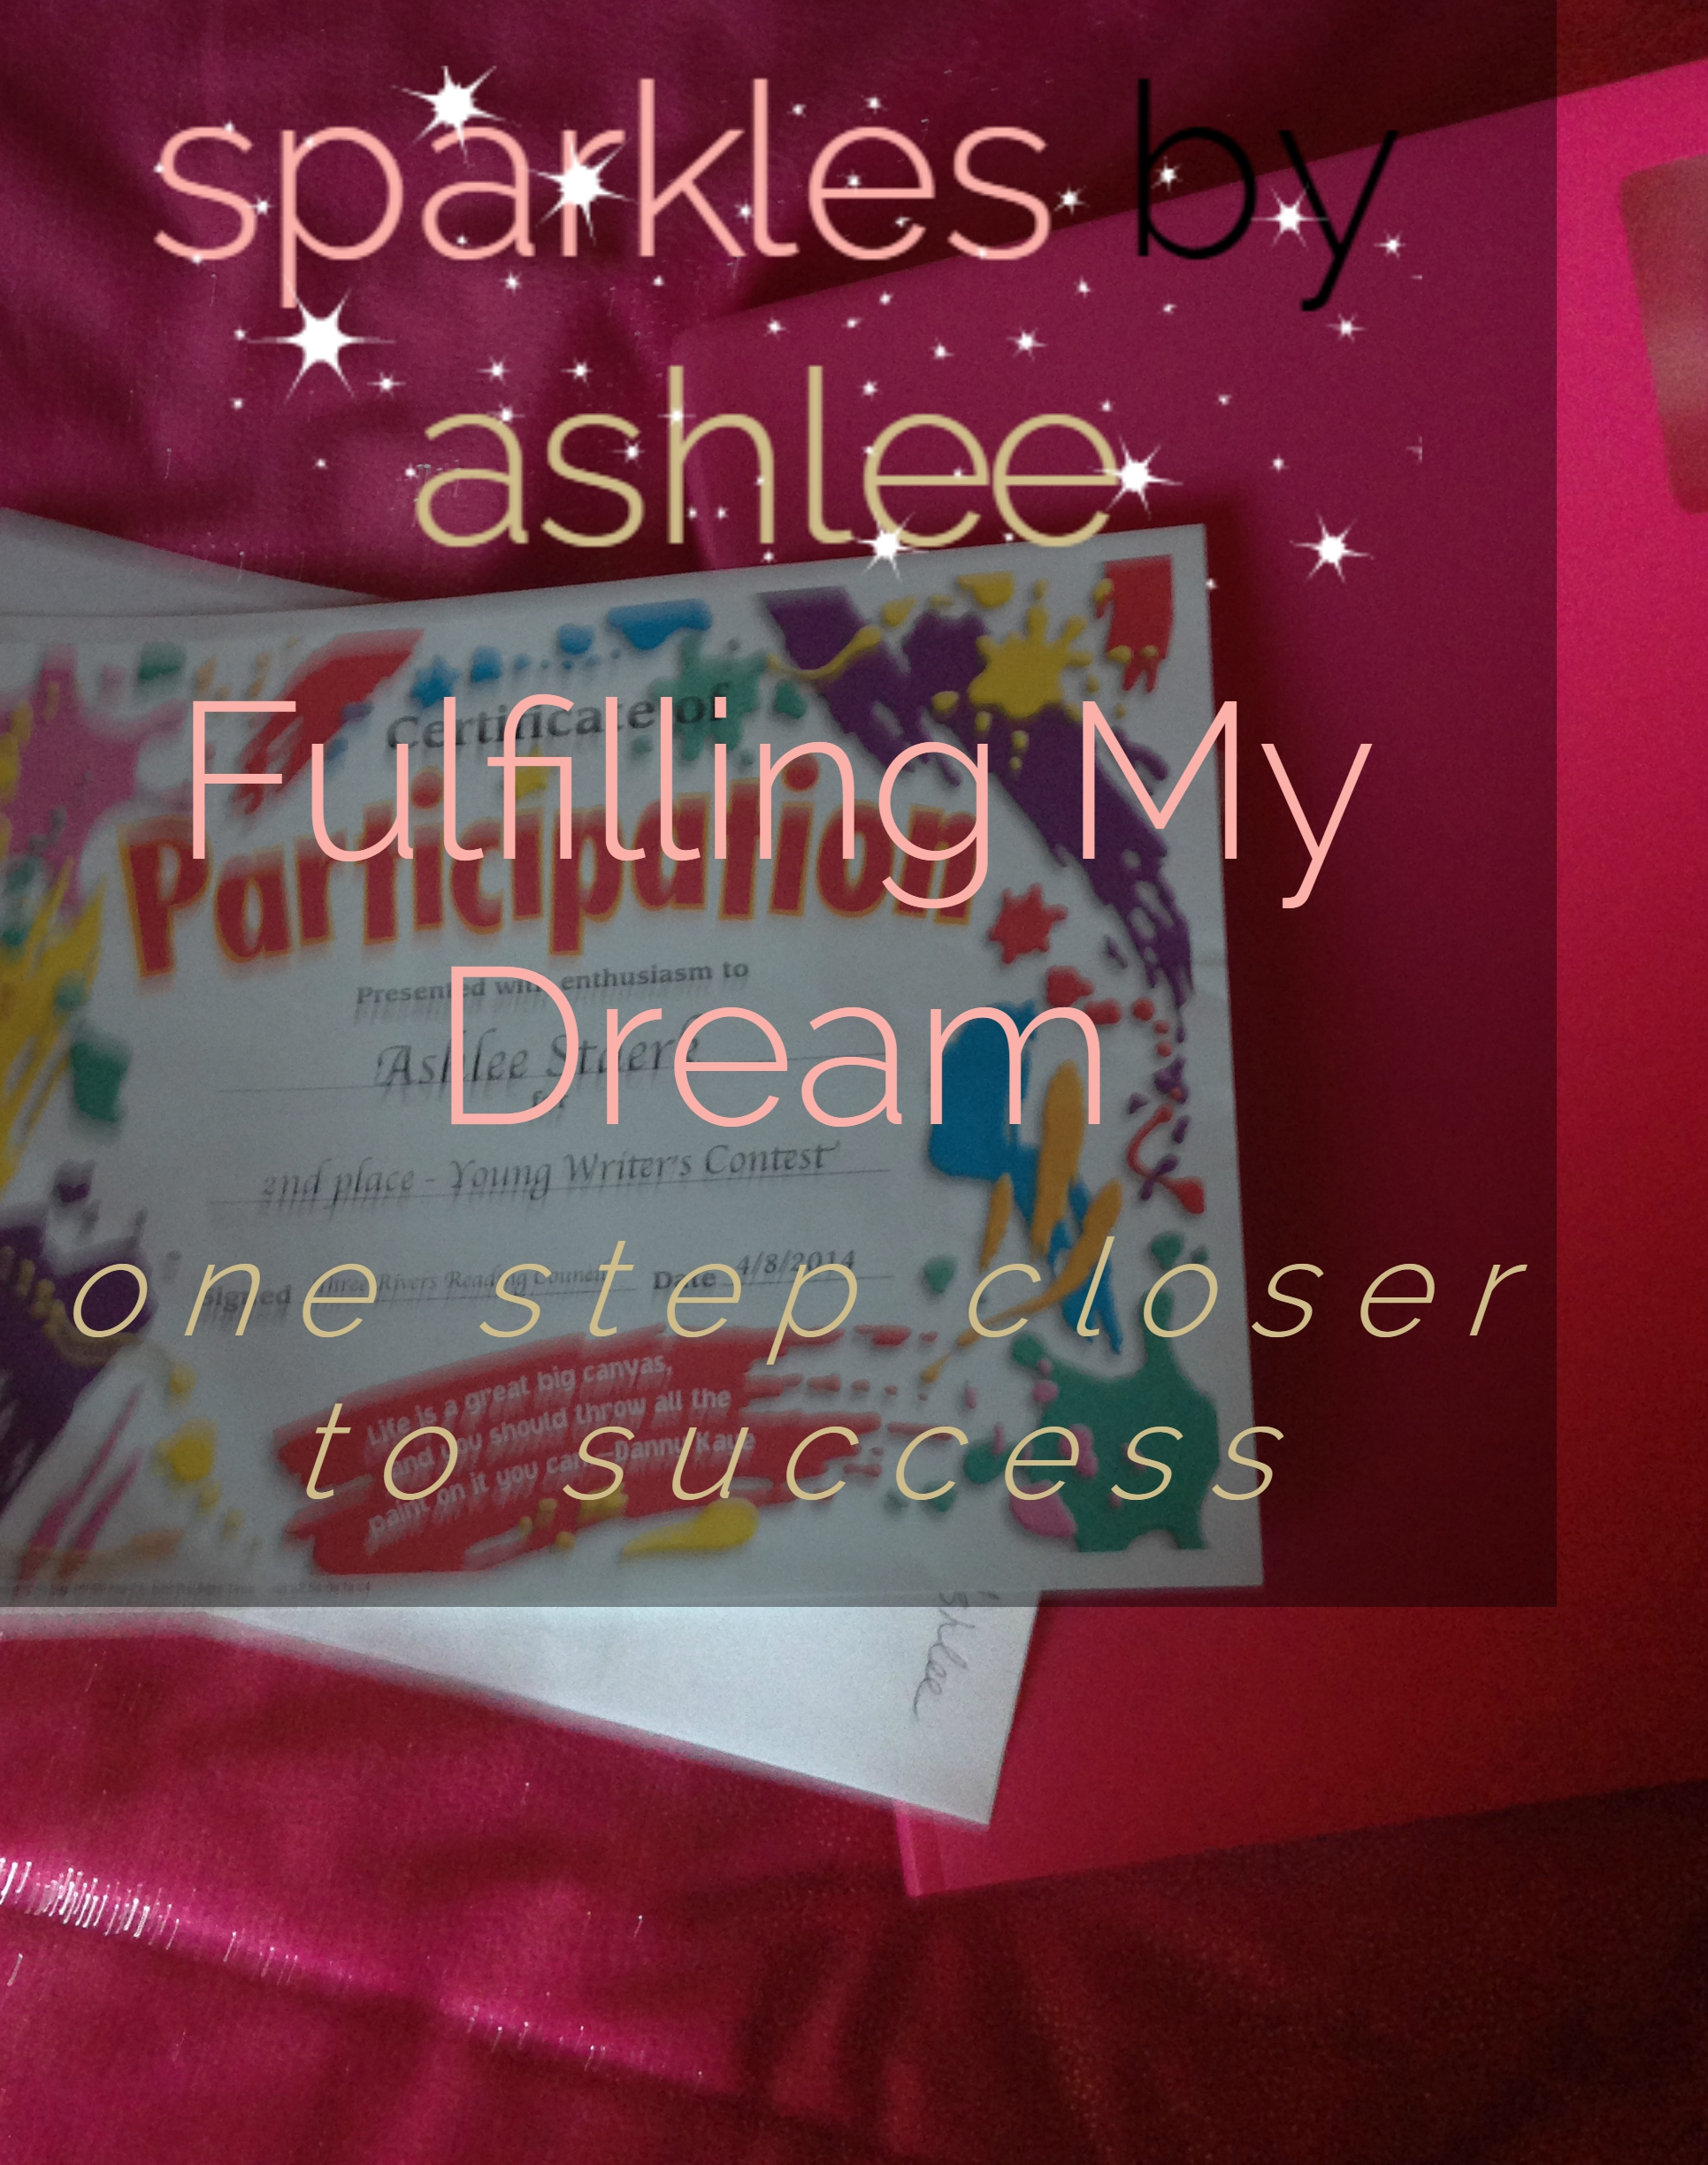 Fulfilling-My-Dreams-Sparkles-by-Ashlee.jpg